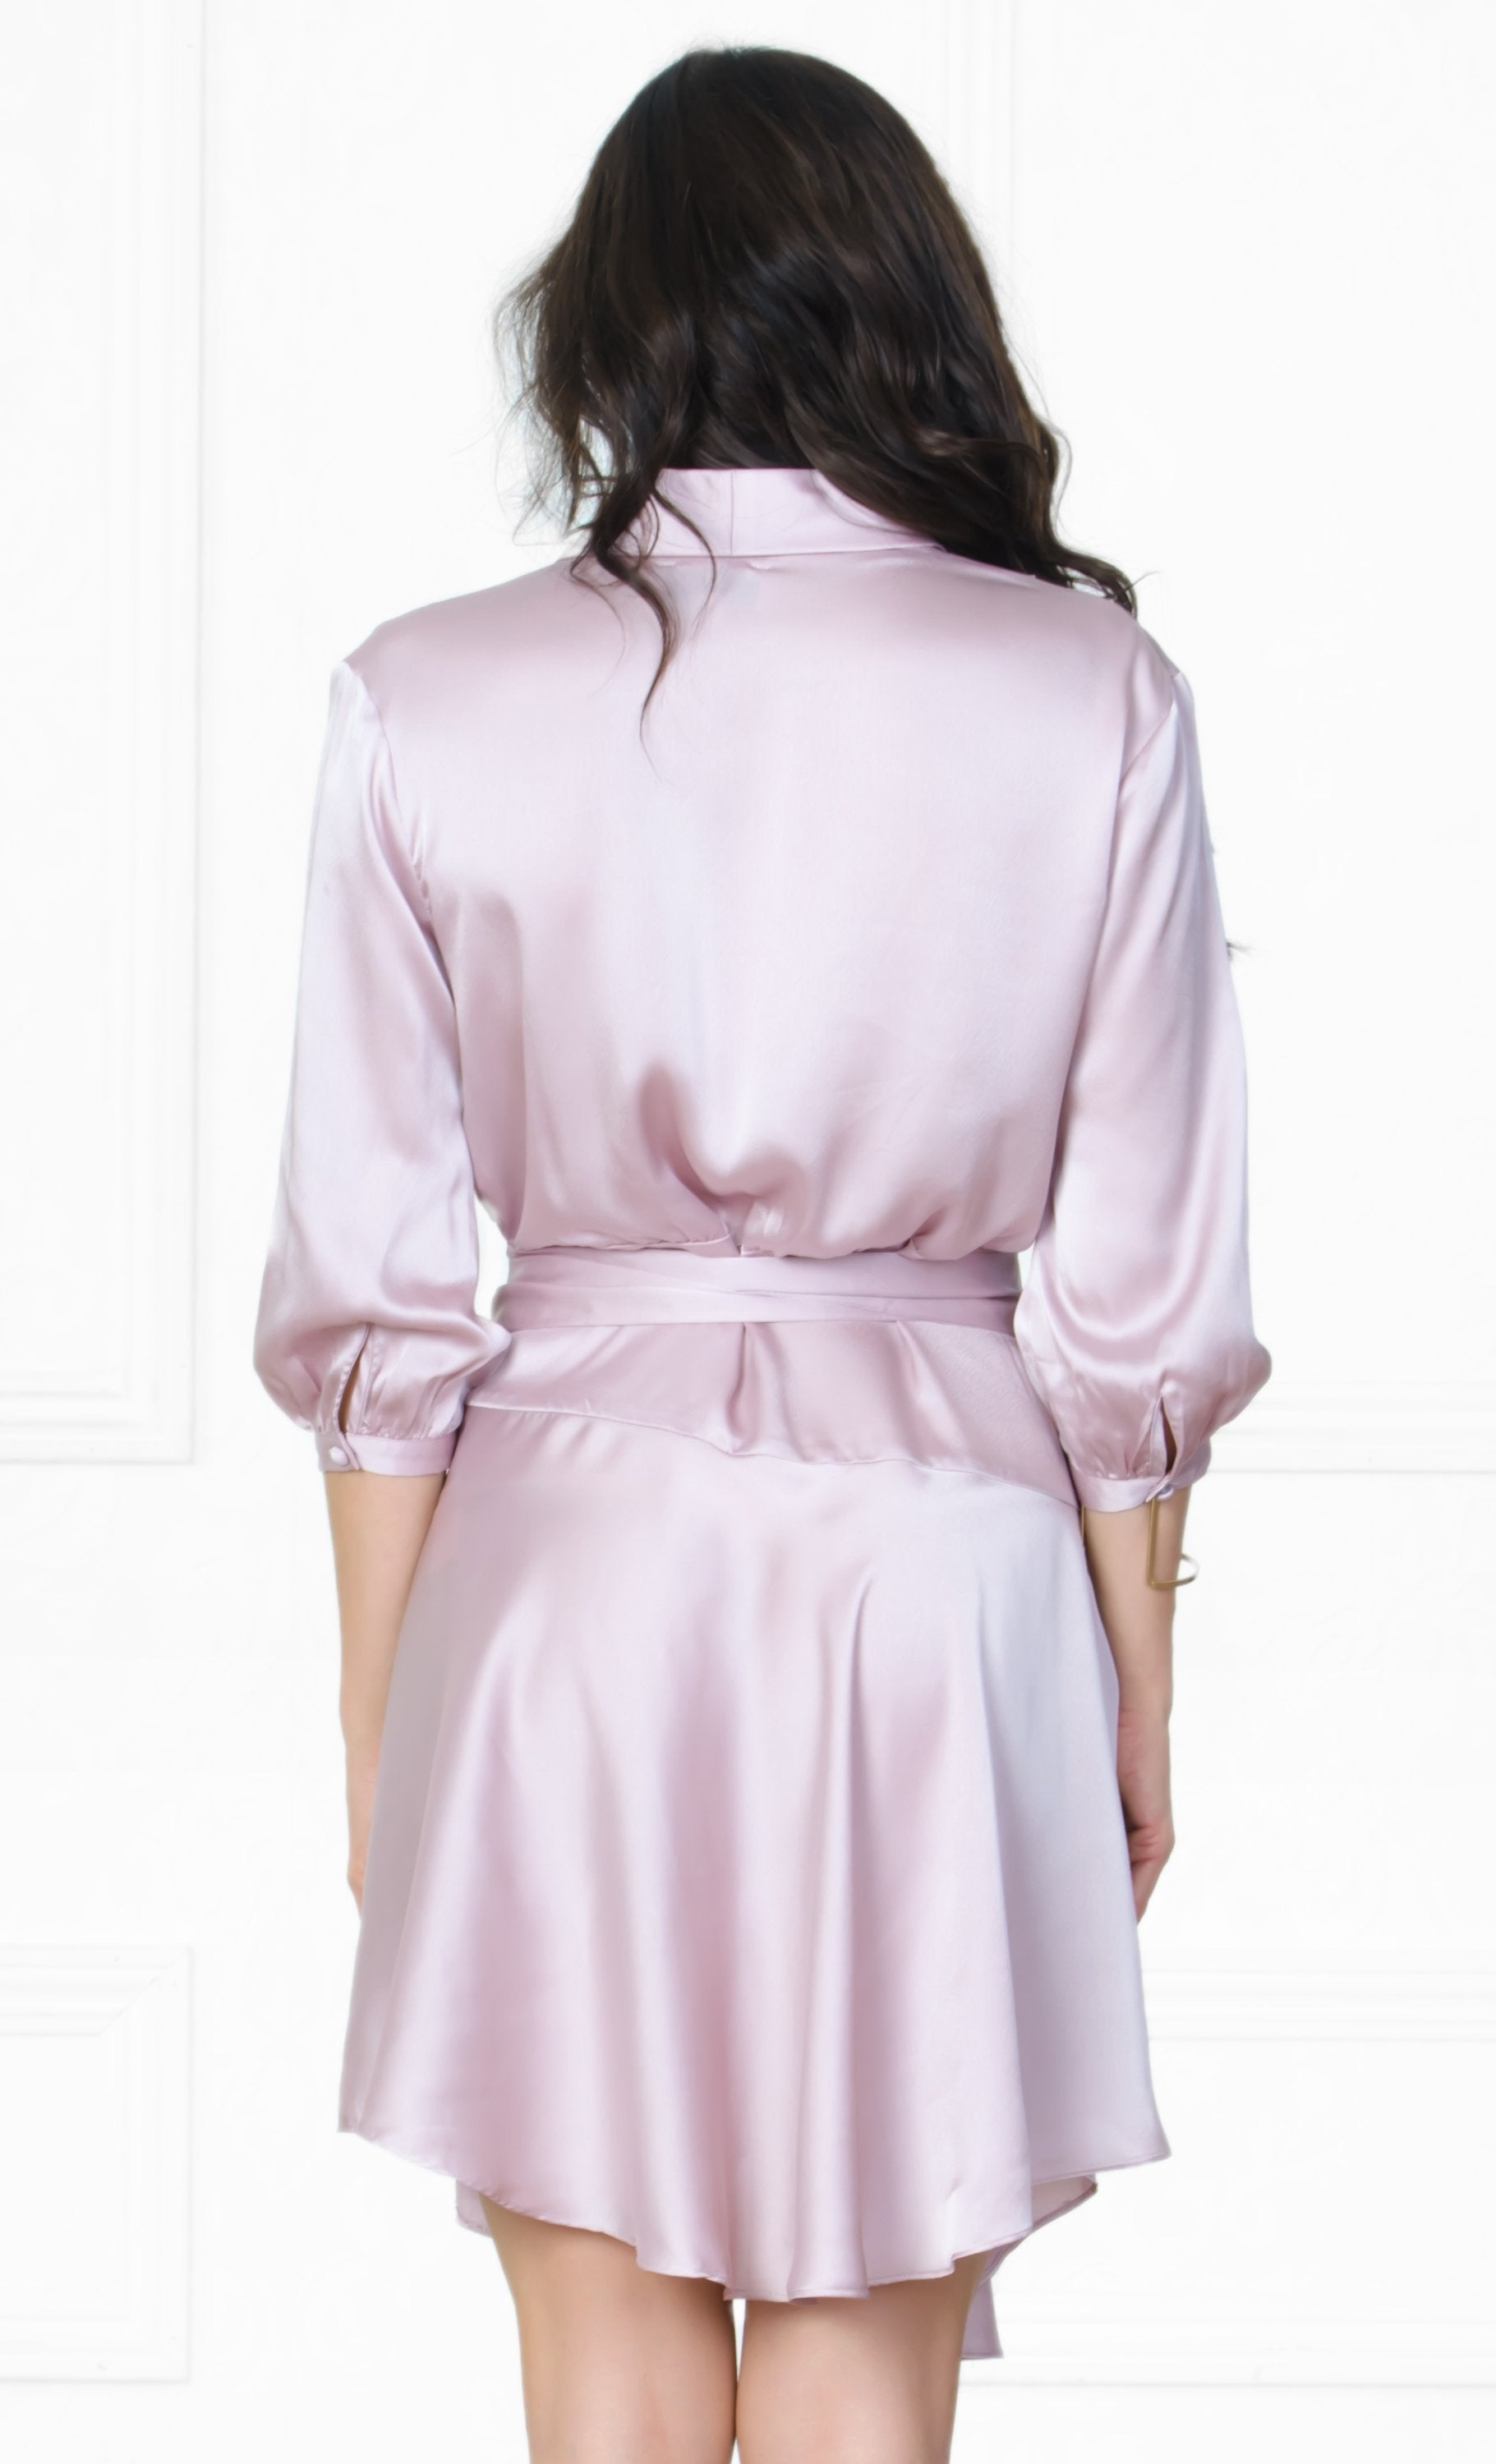 Indie XO First Date Light Purple Lavender 3/4 Sleeve Cross Wrap V Neck Ruffle Satin Mini Dress - Sold Out